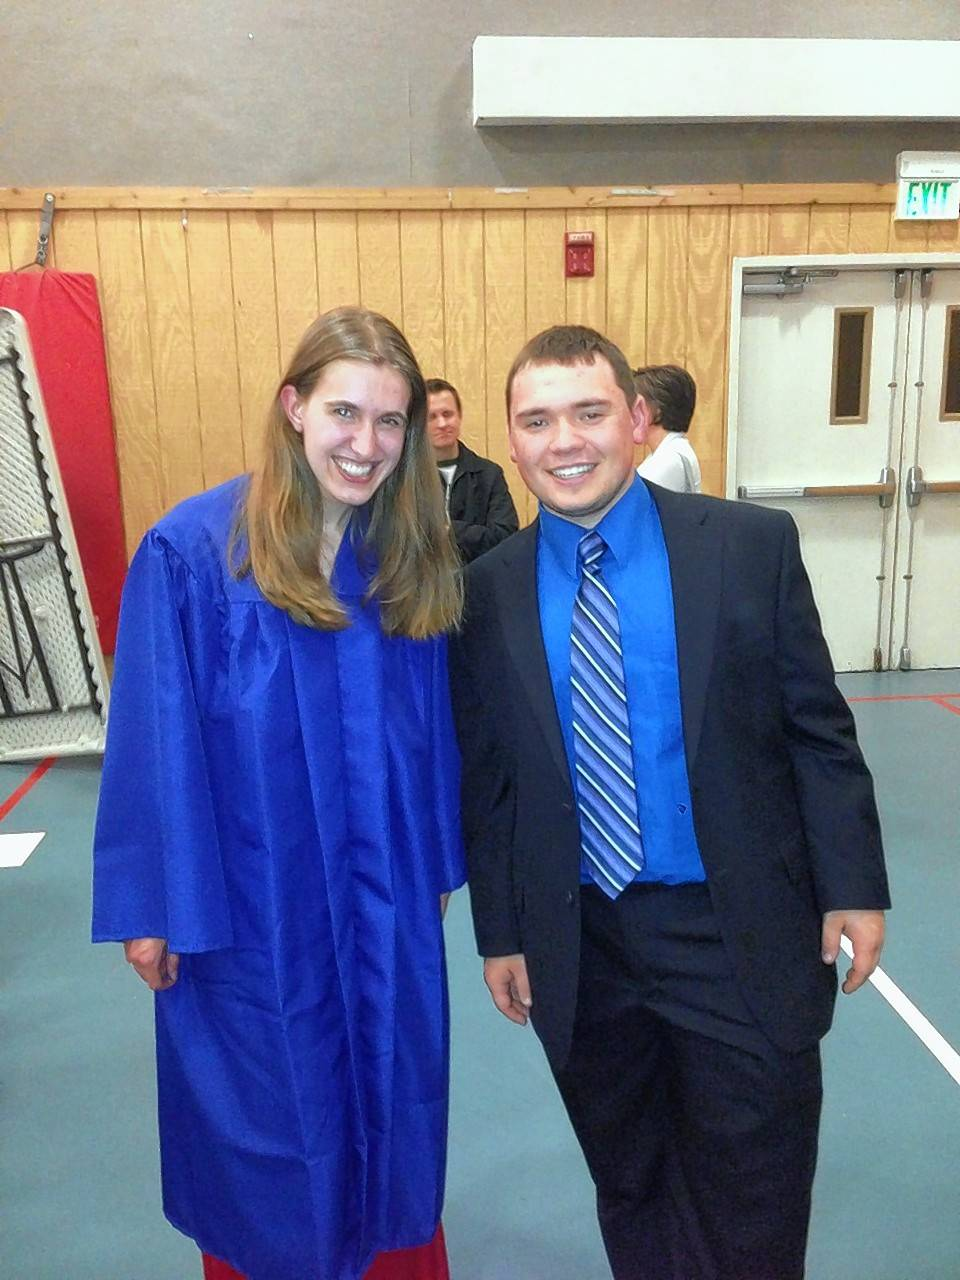 The Class of 2013 at Naperville Christian Academy featured just two students: Kaitlyn MacIntyre and Stevie Melter. They were the first two graduates at the small private school.